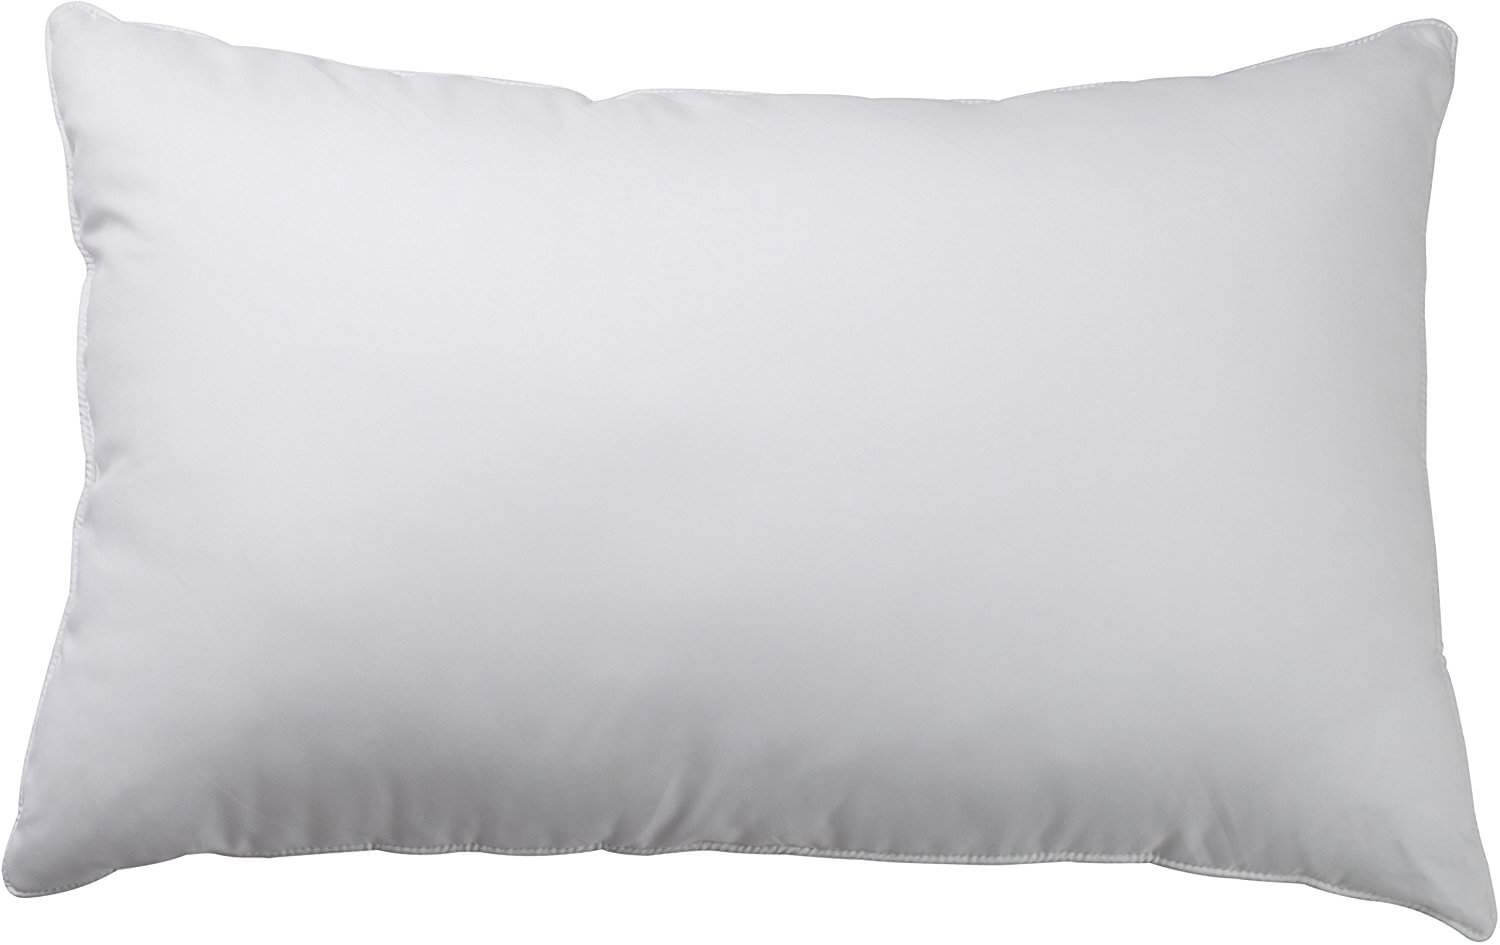 eLuxury I AM Stomach Sleeper Pillow